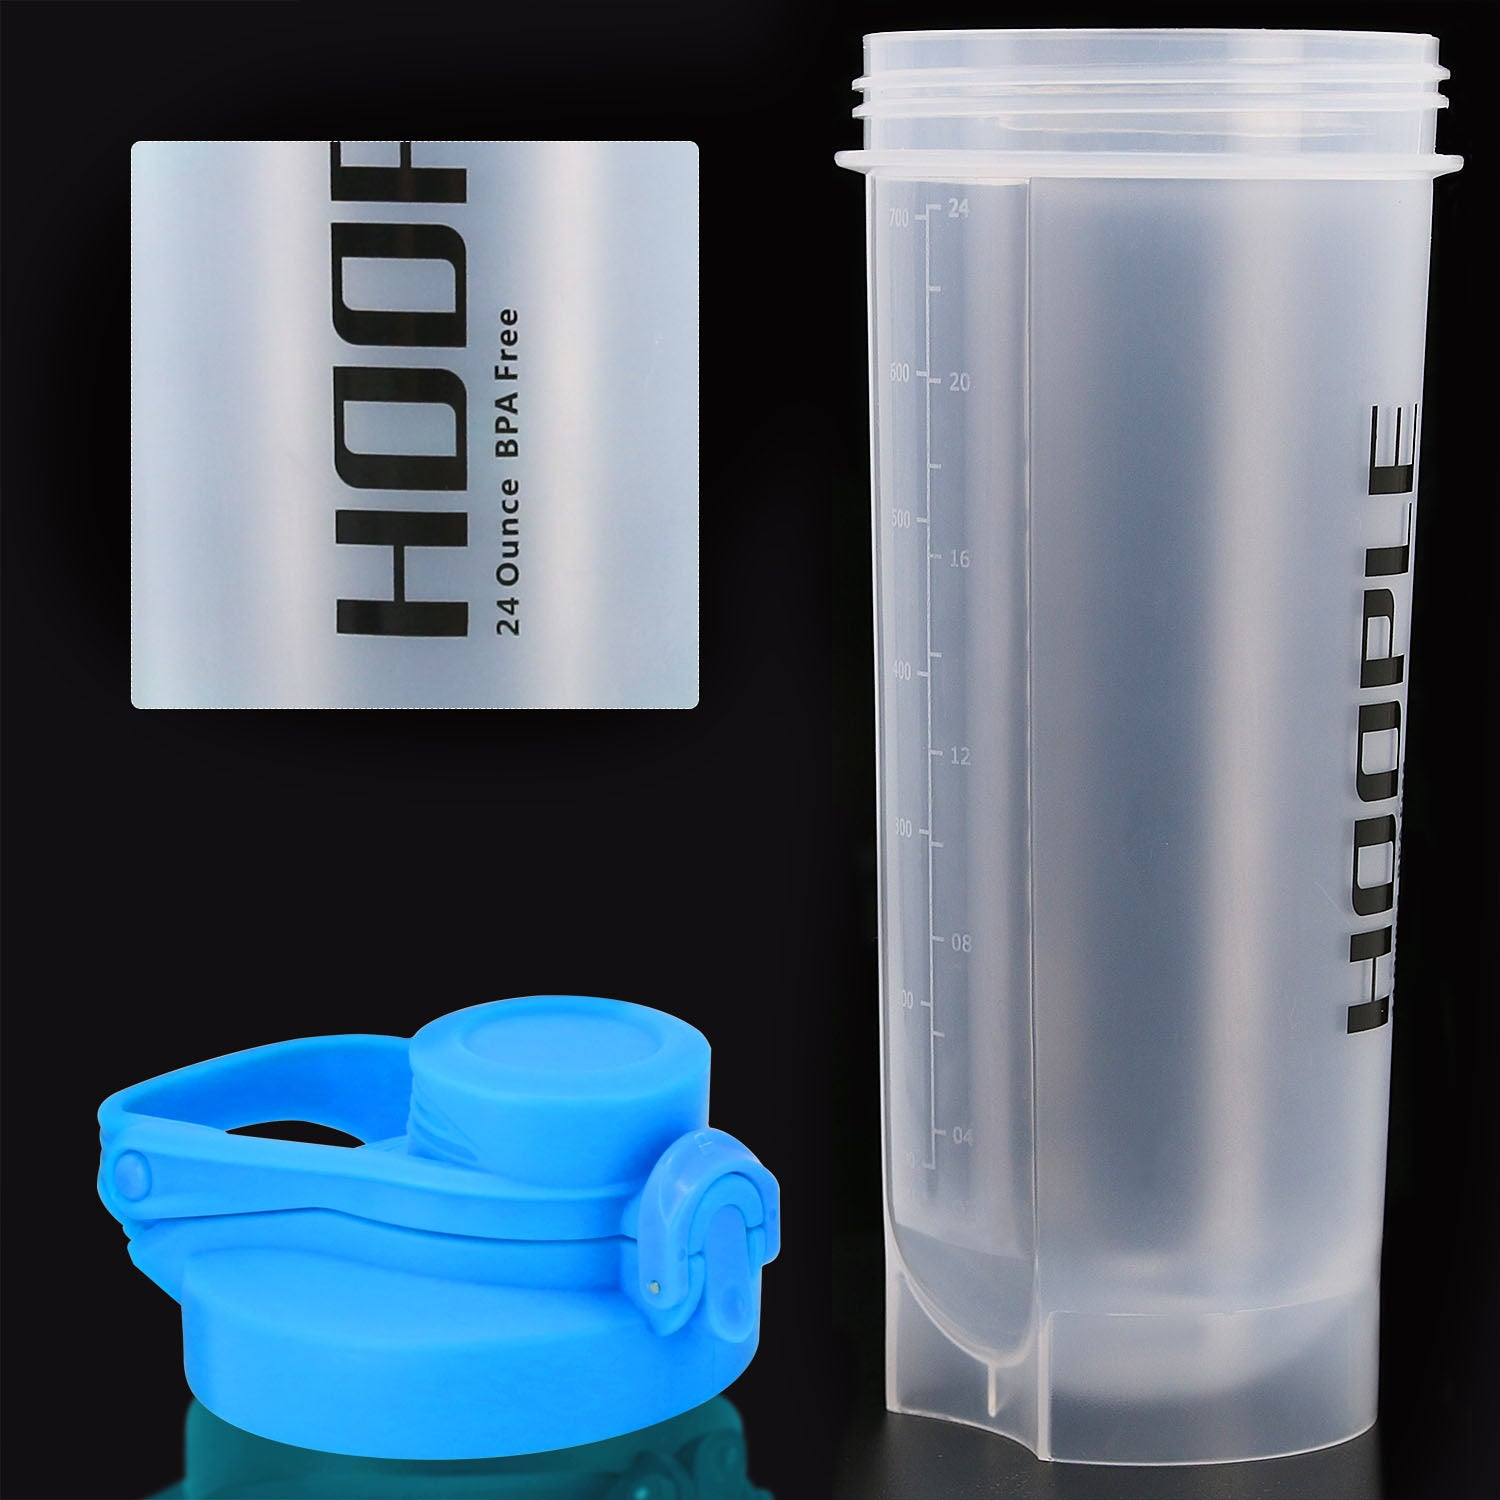 Hoople 24 OZ Shaker Bottle Protein Powder Shake Blender Gym Smoothie Cup, BPA Free, Auto-Flip Leak-Proof Lid, Handle with Ball Included - Clear/Aqua